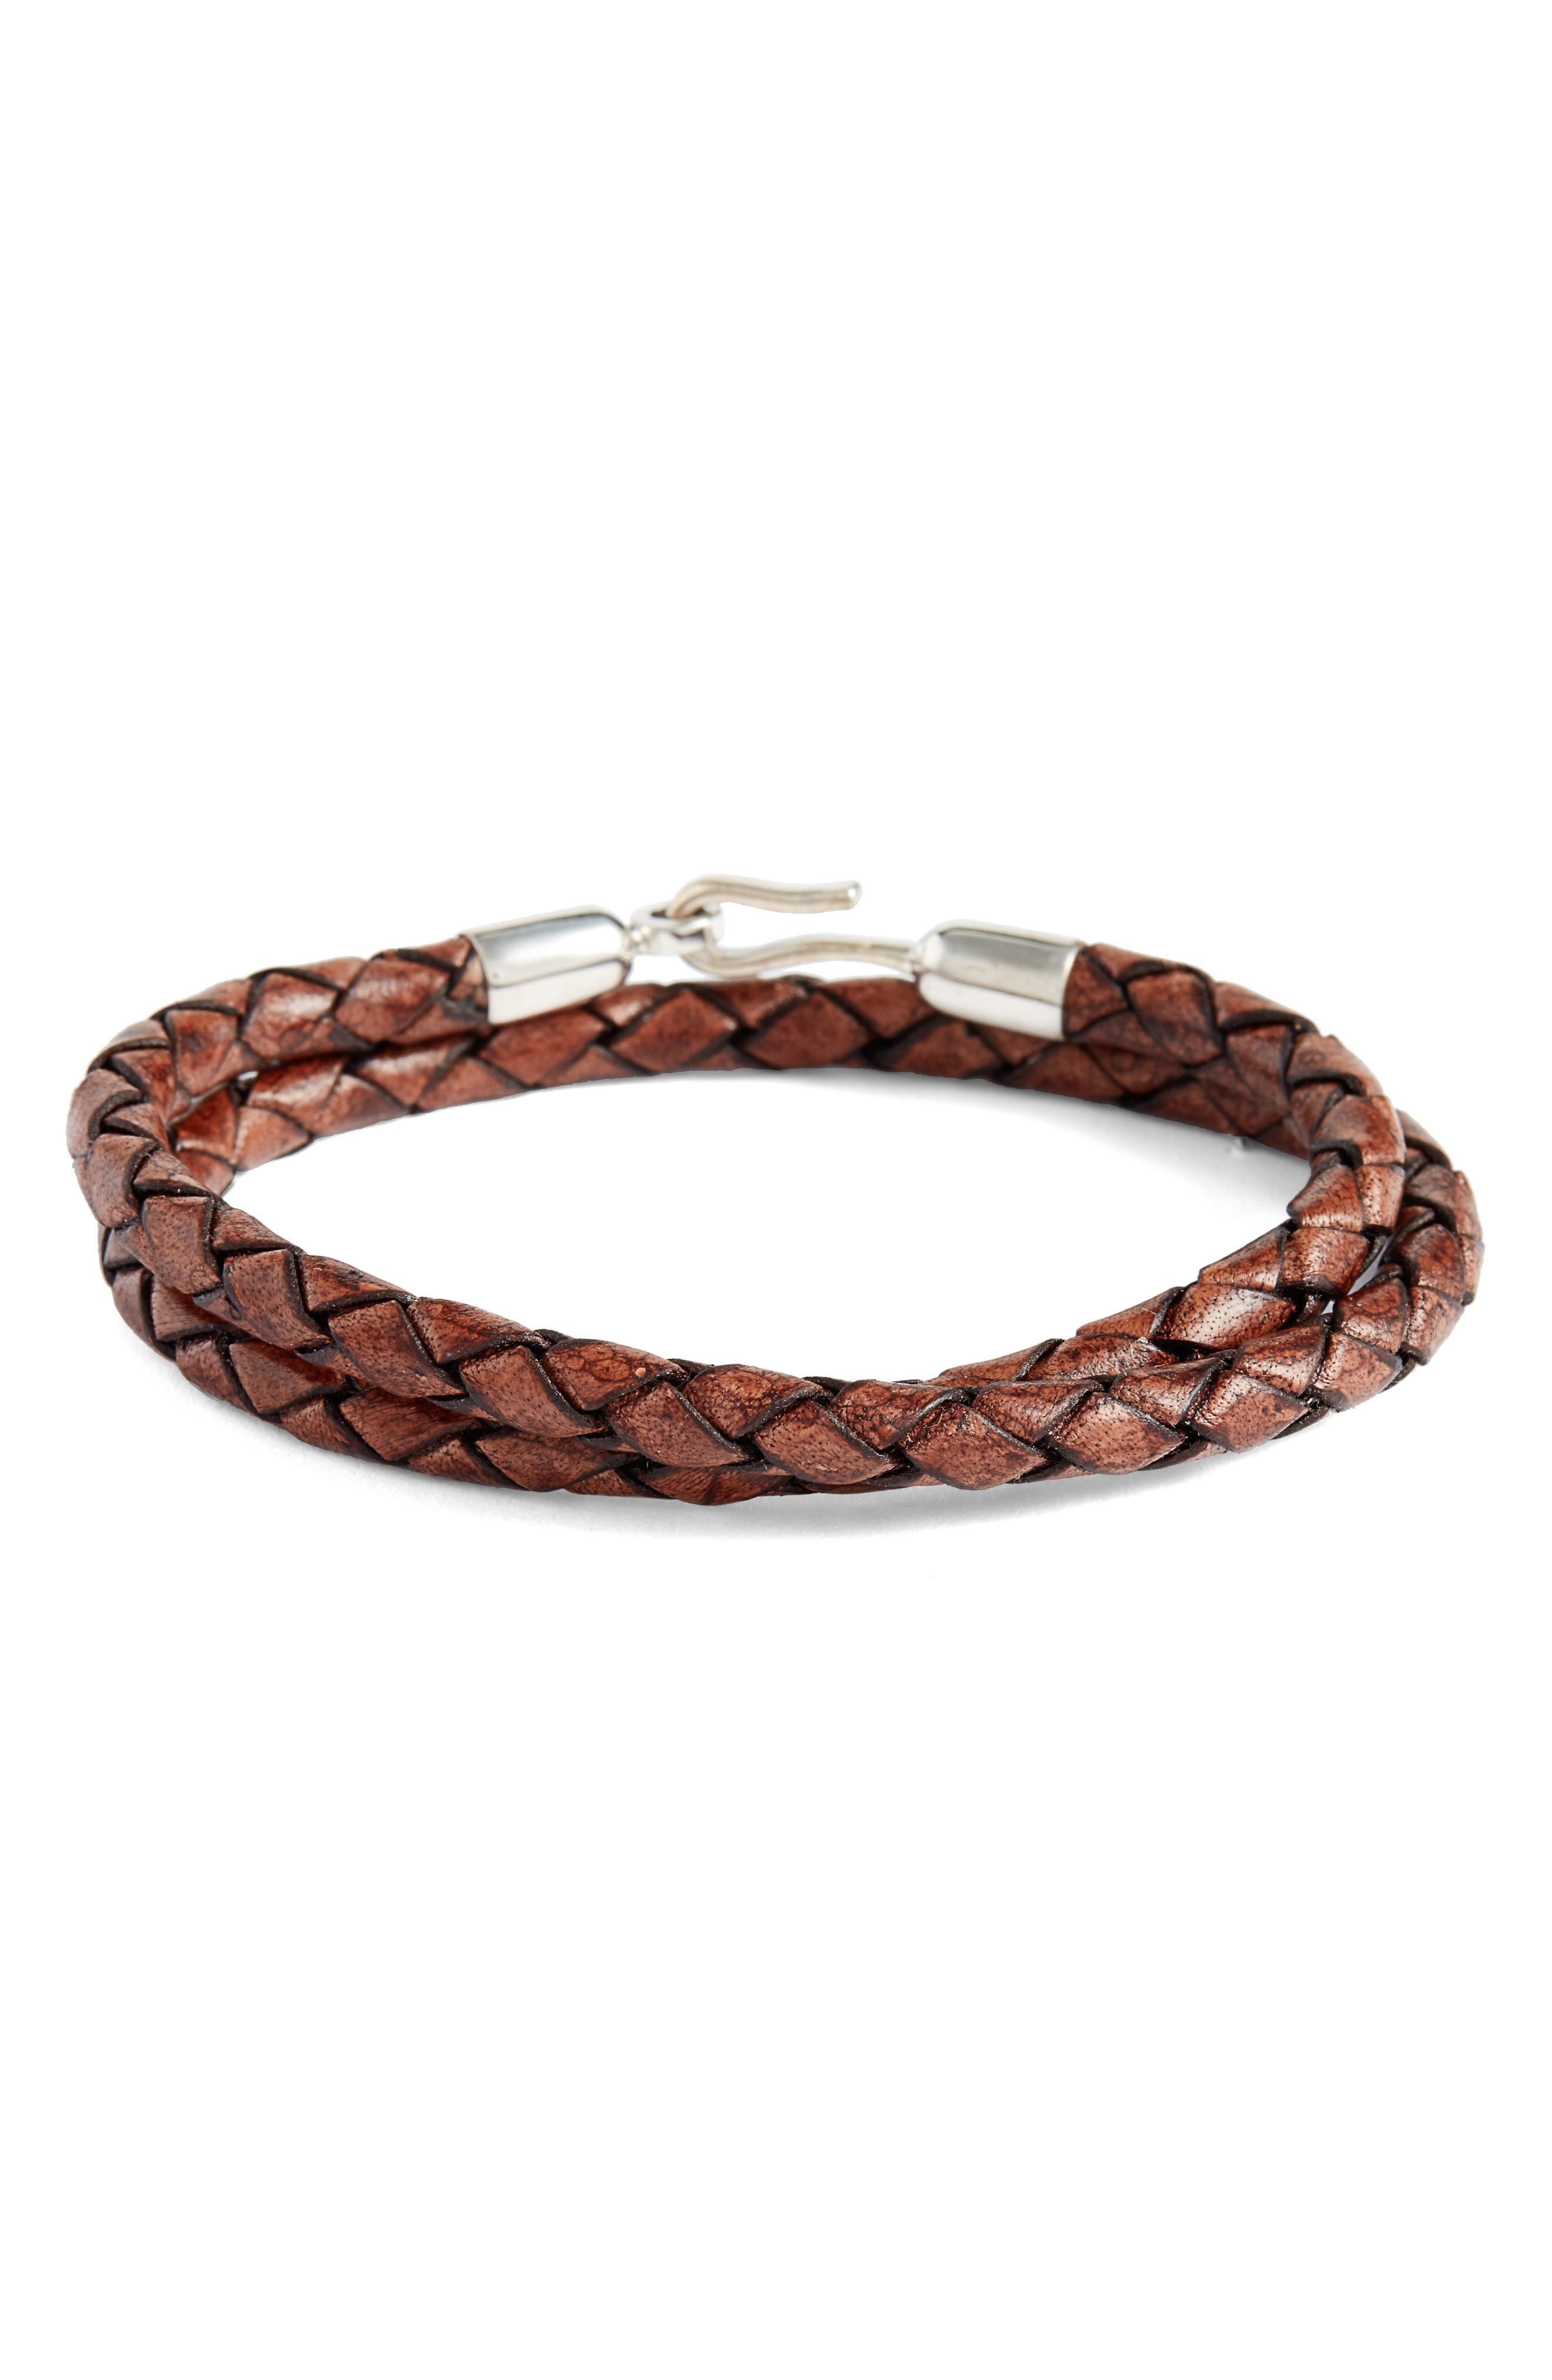 Braided Leather Wrap Bracelet,                             Main thumbnail 1, color,                             ANTIQUE BROWN